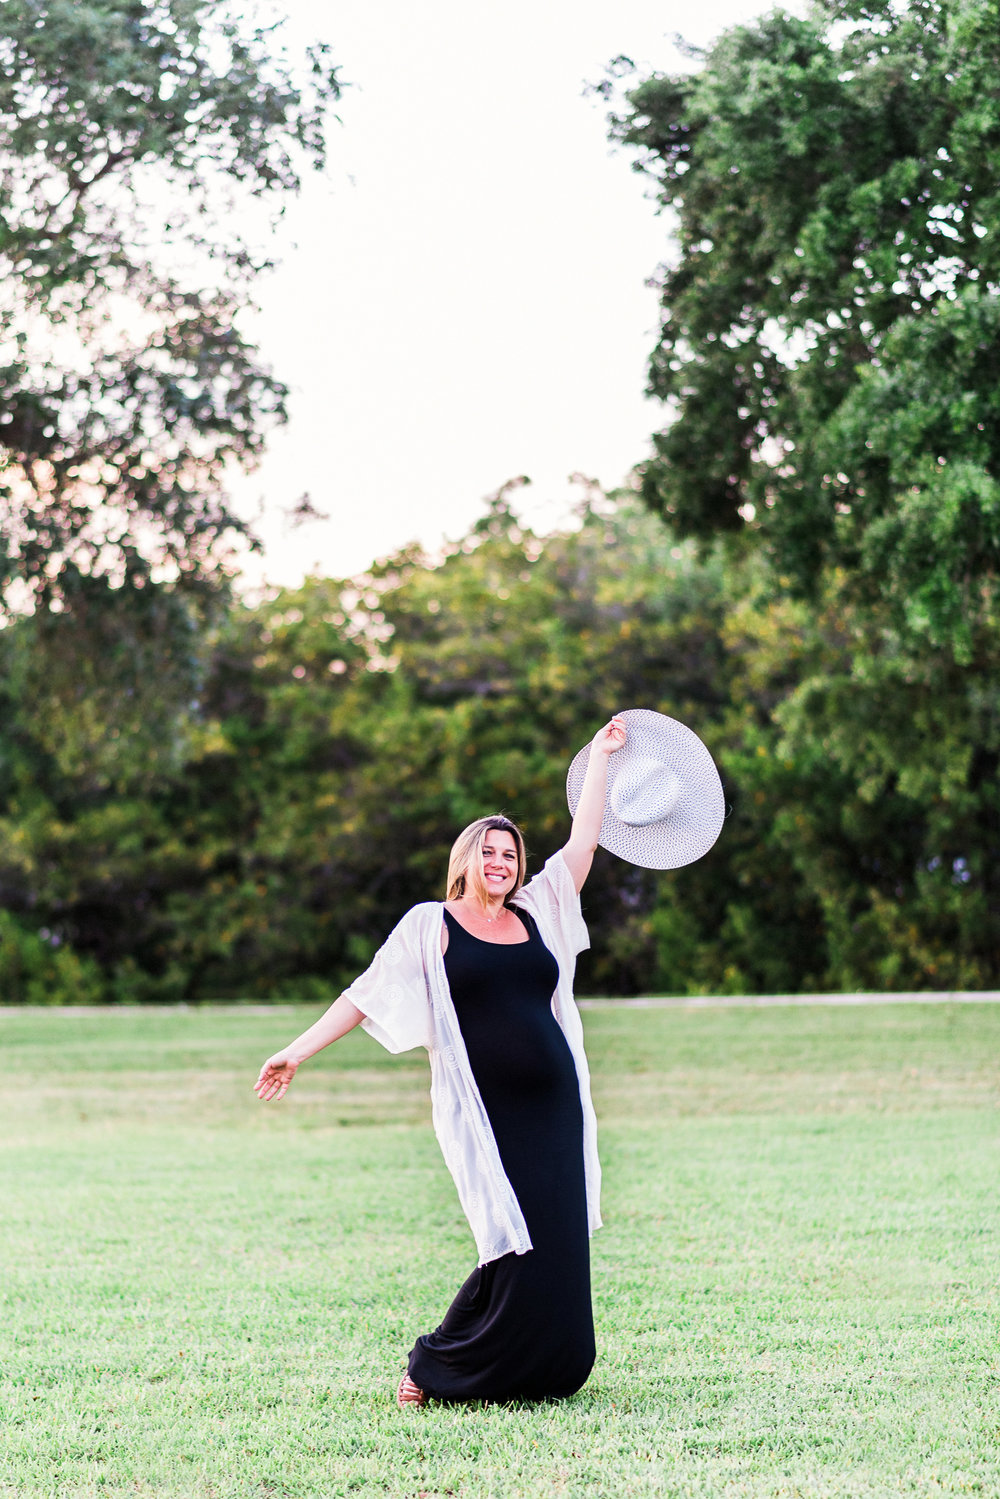 Fun + Playful MATERNITY PHOTOS | A Riverside Park Florida Maternity Session